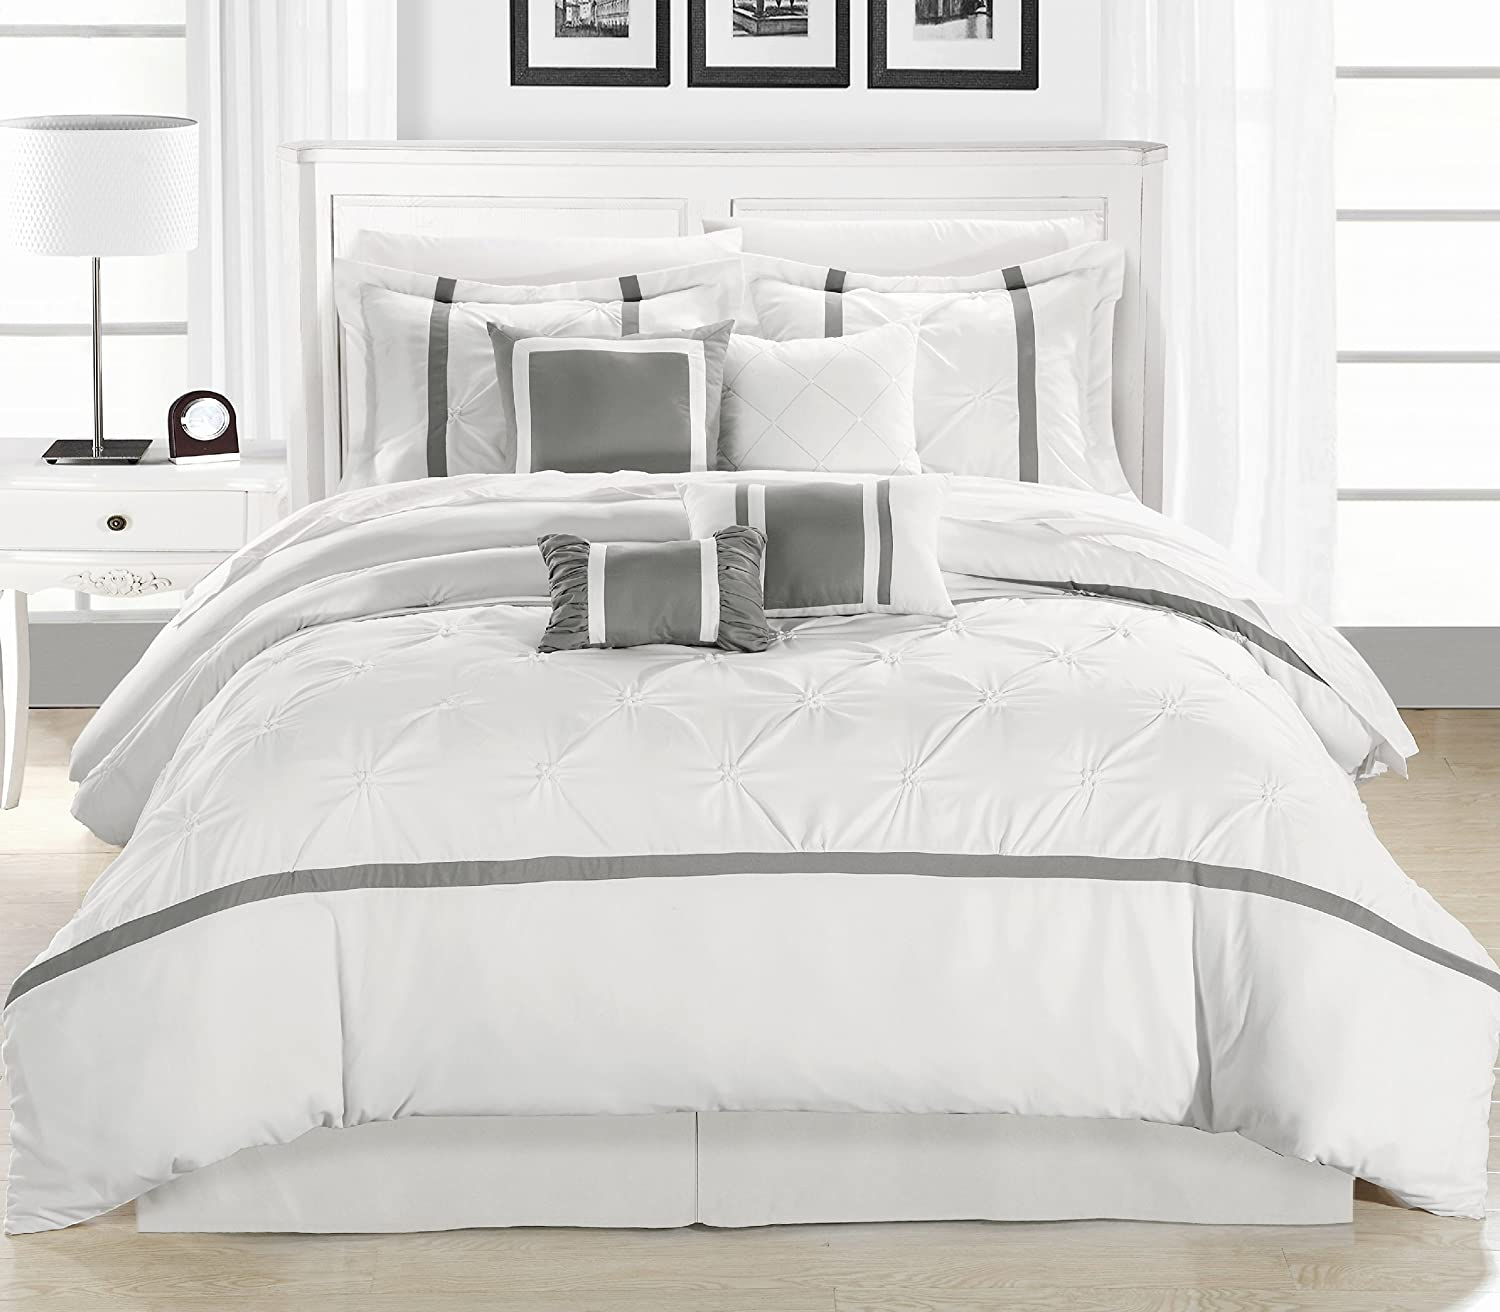 Amazon.com: Chic Home Vermont 8-Piece Comforter Set, Queen, White ...